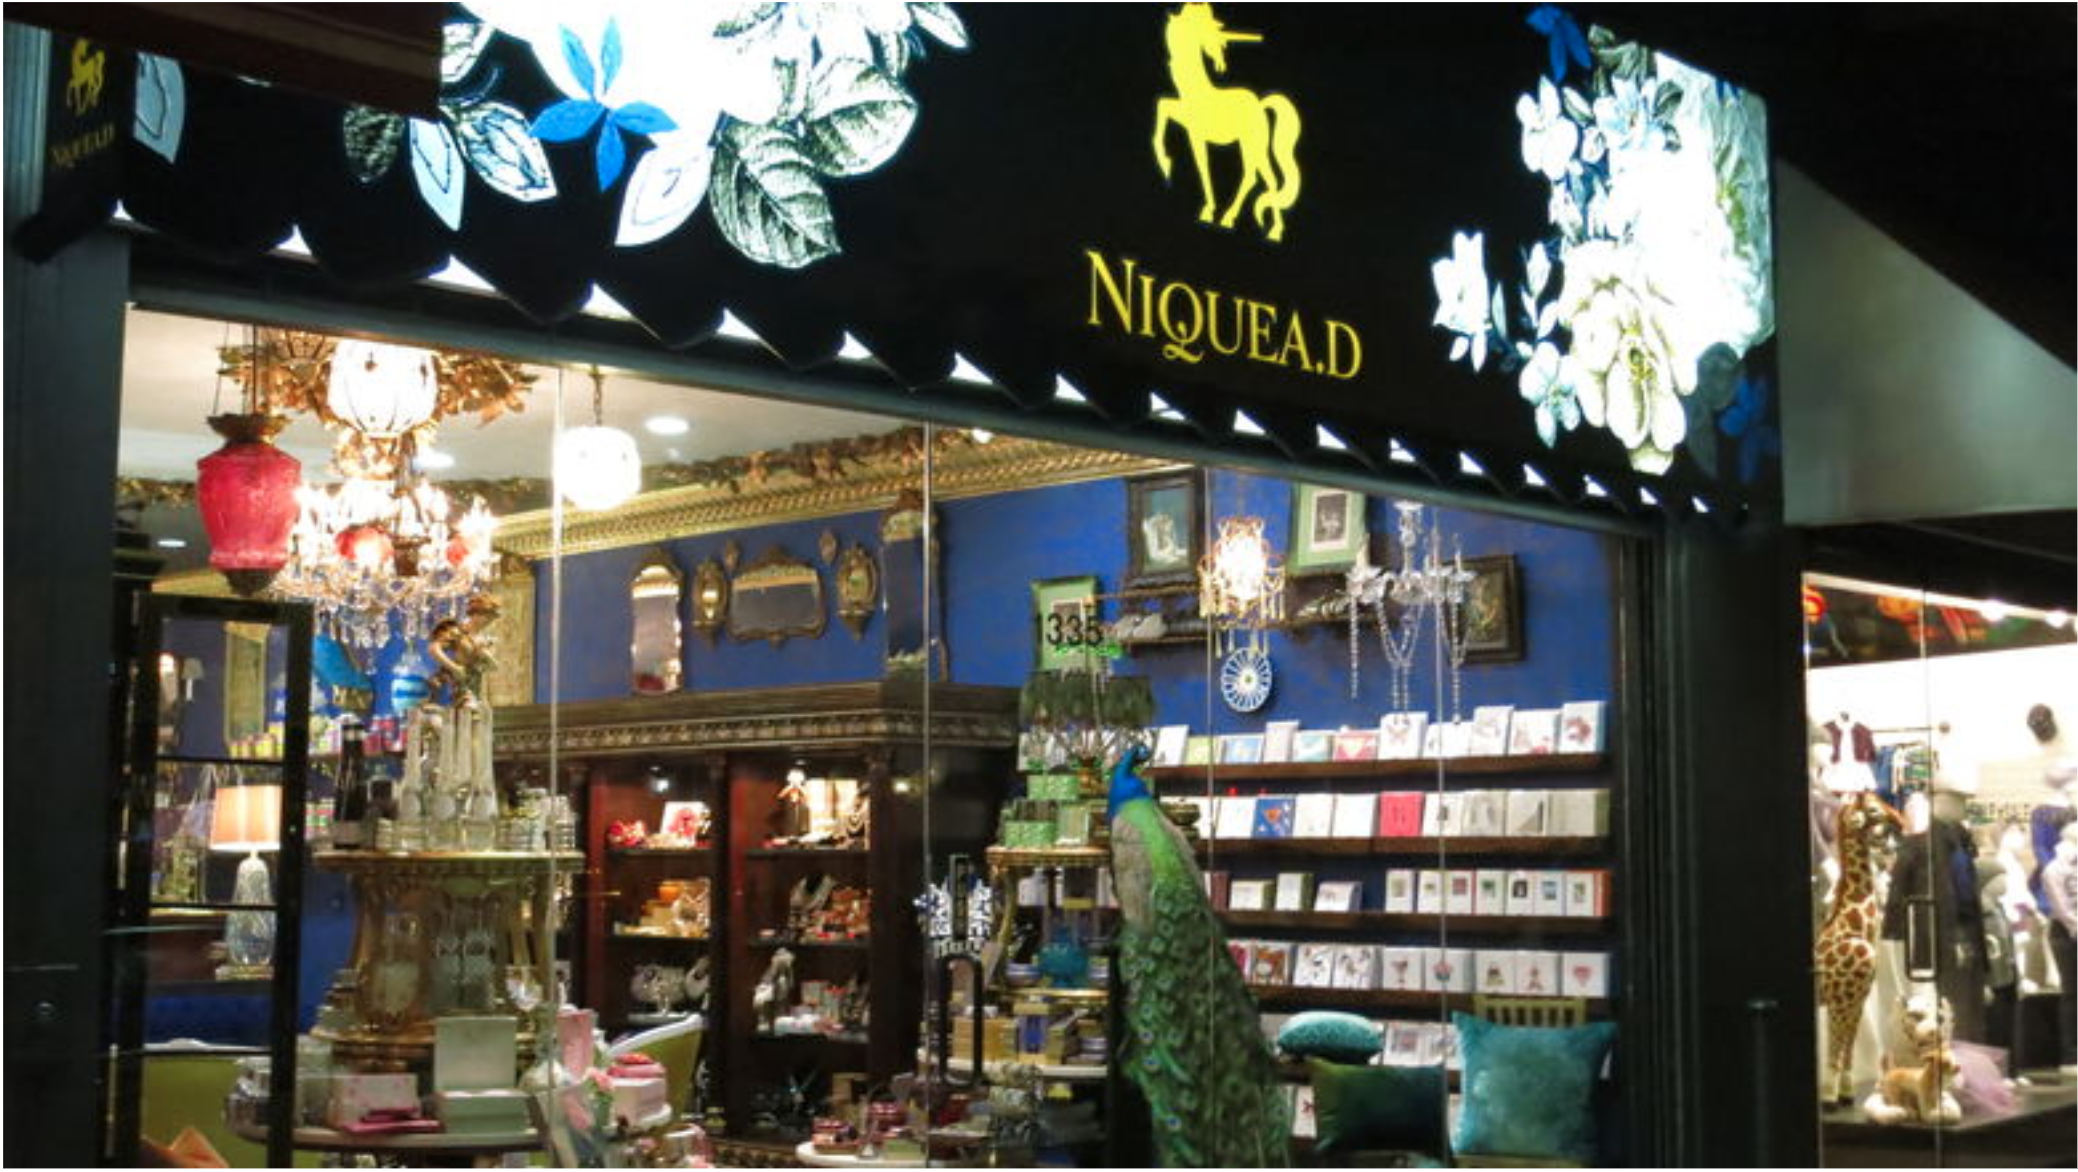 Above: UK publishers' cards were also on sale in SRG's upmarket lifestyle brand,Niquea.D.